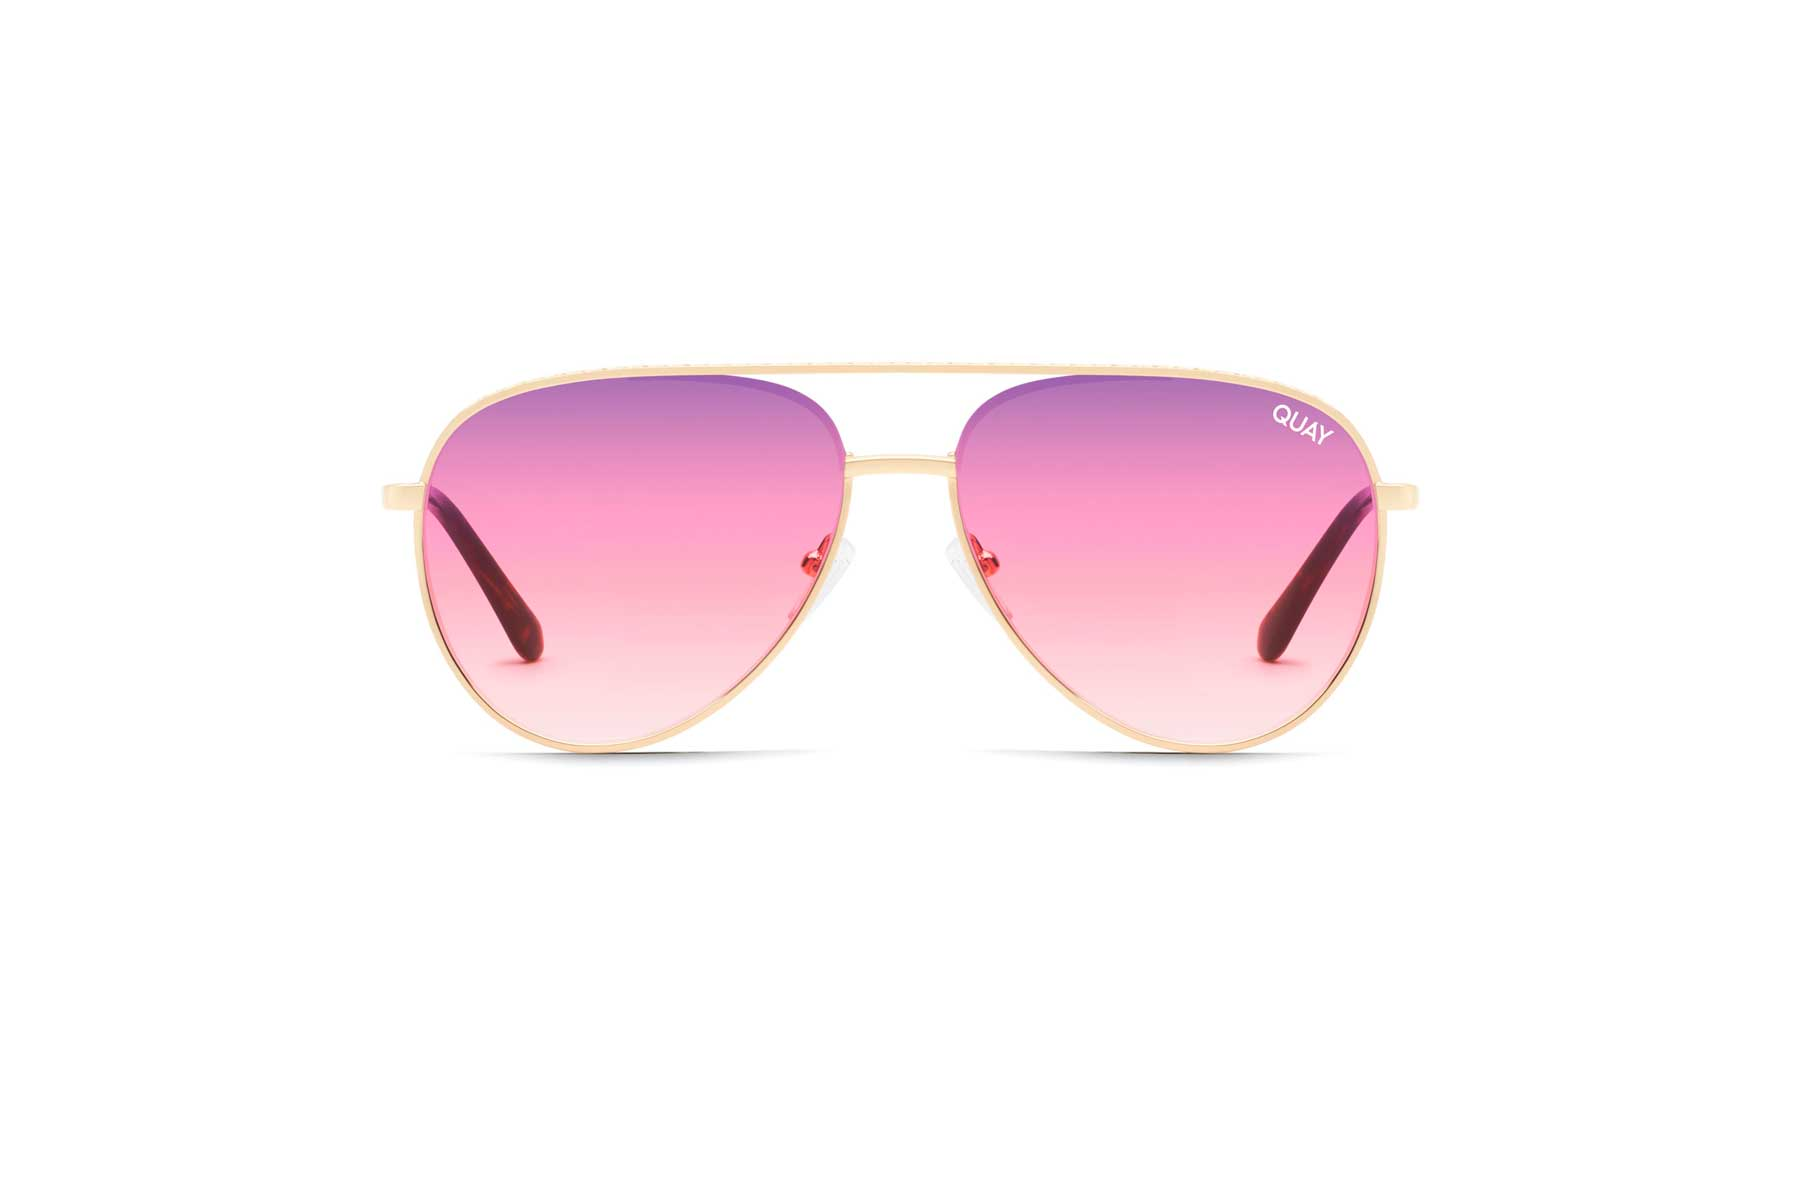 Quay Pink and Purple Sunglasses in Aviator style